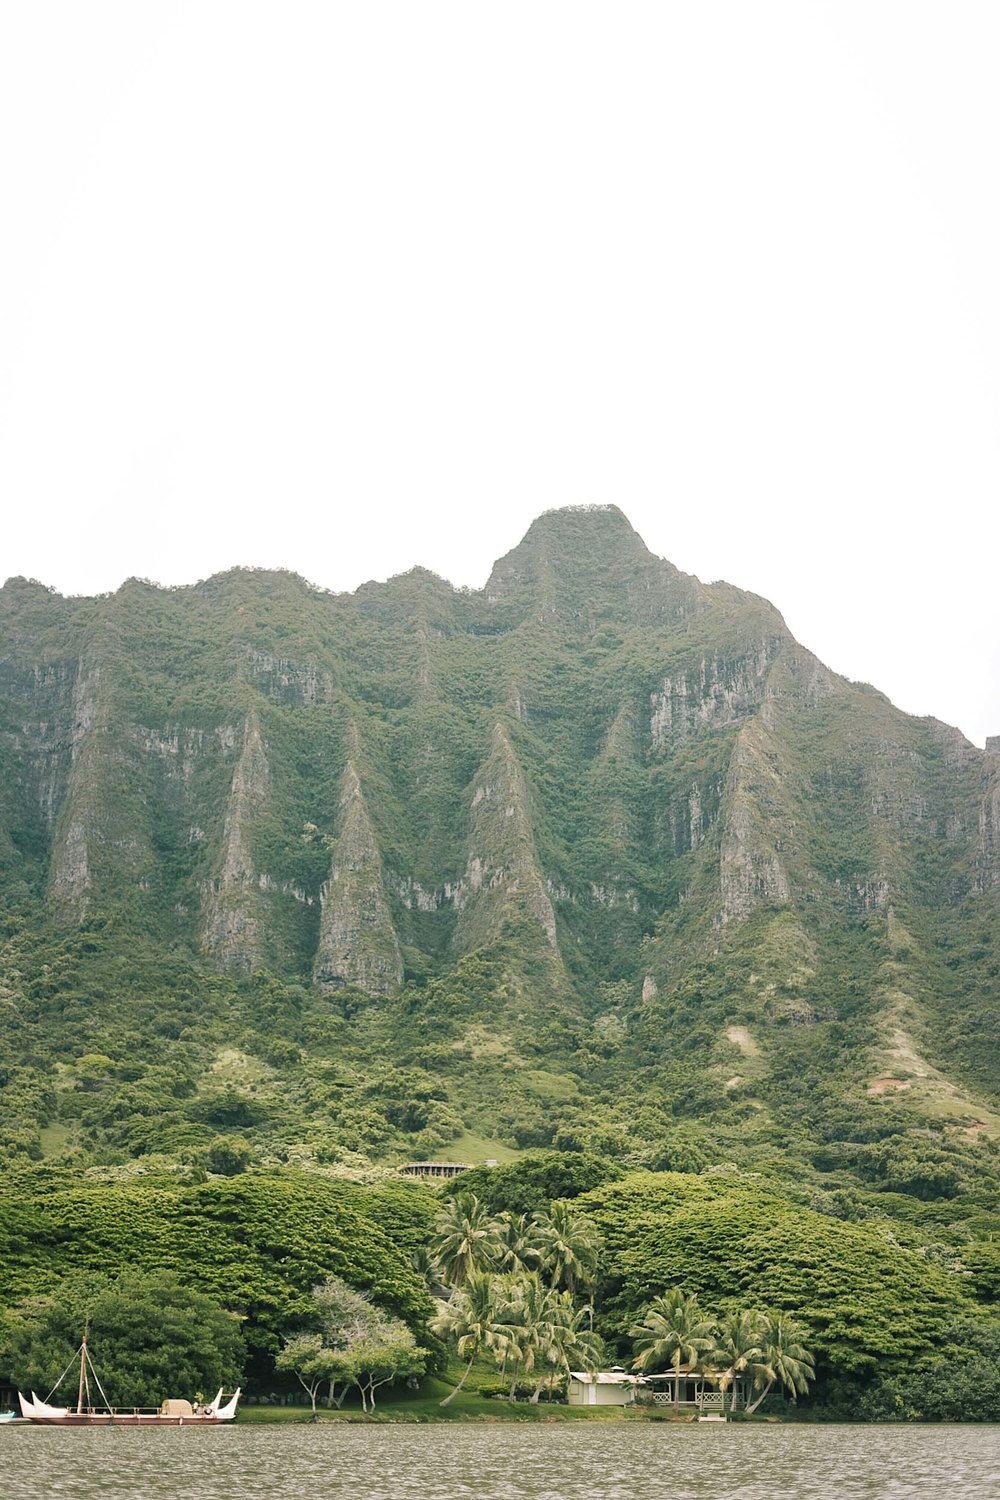 Kualoa Ranch, one of the top Oahu Instagram spots